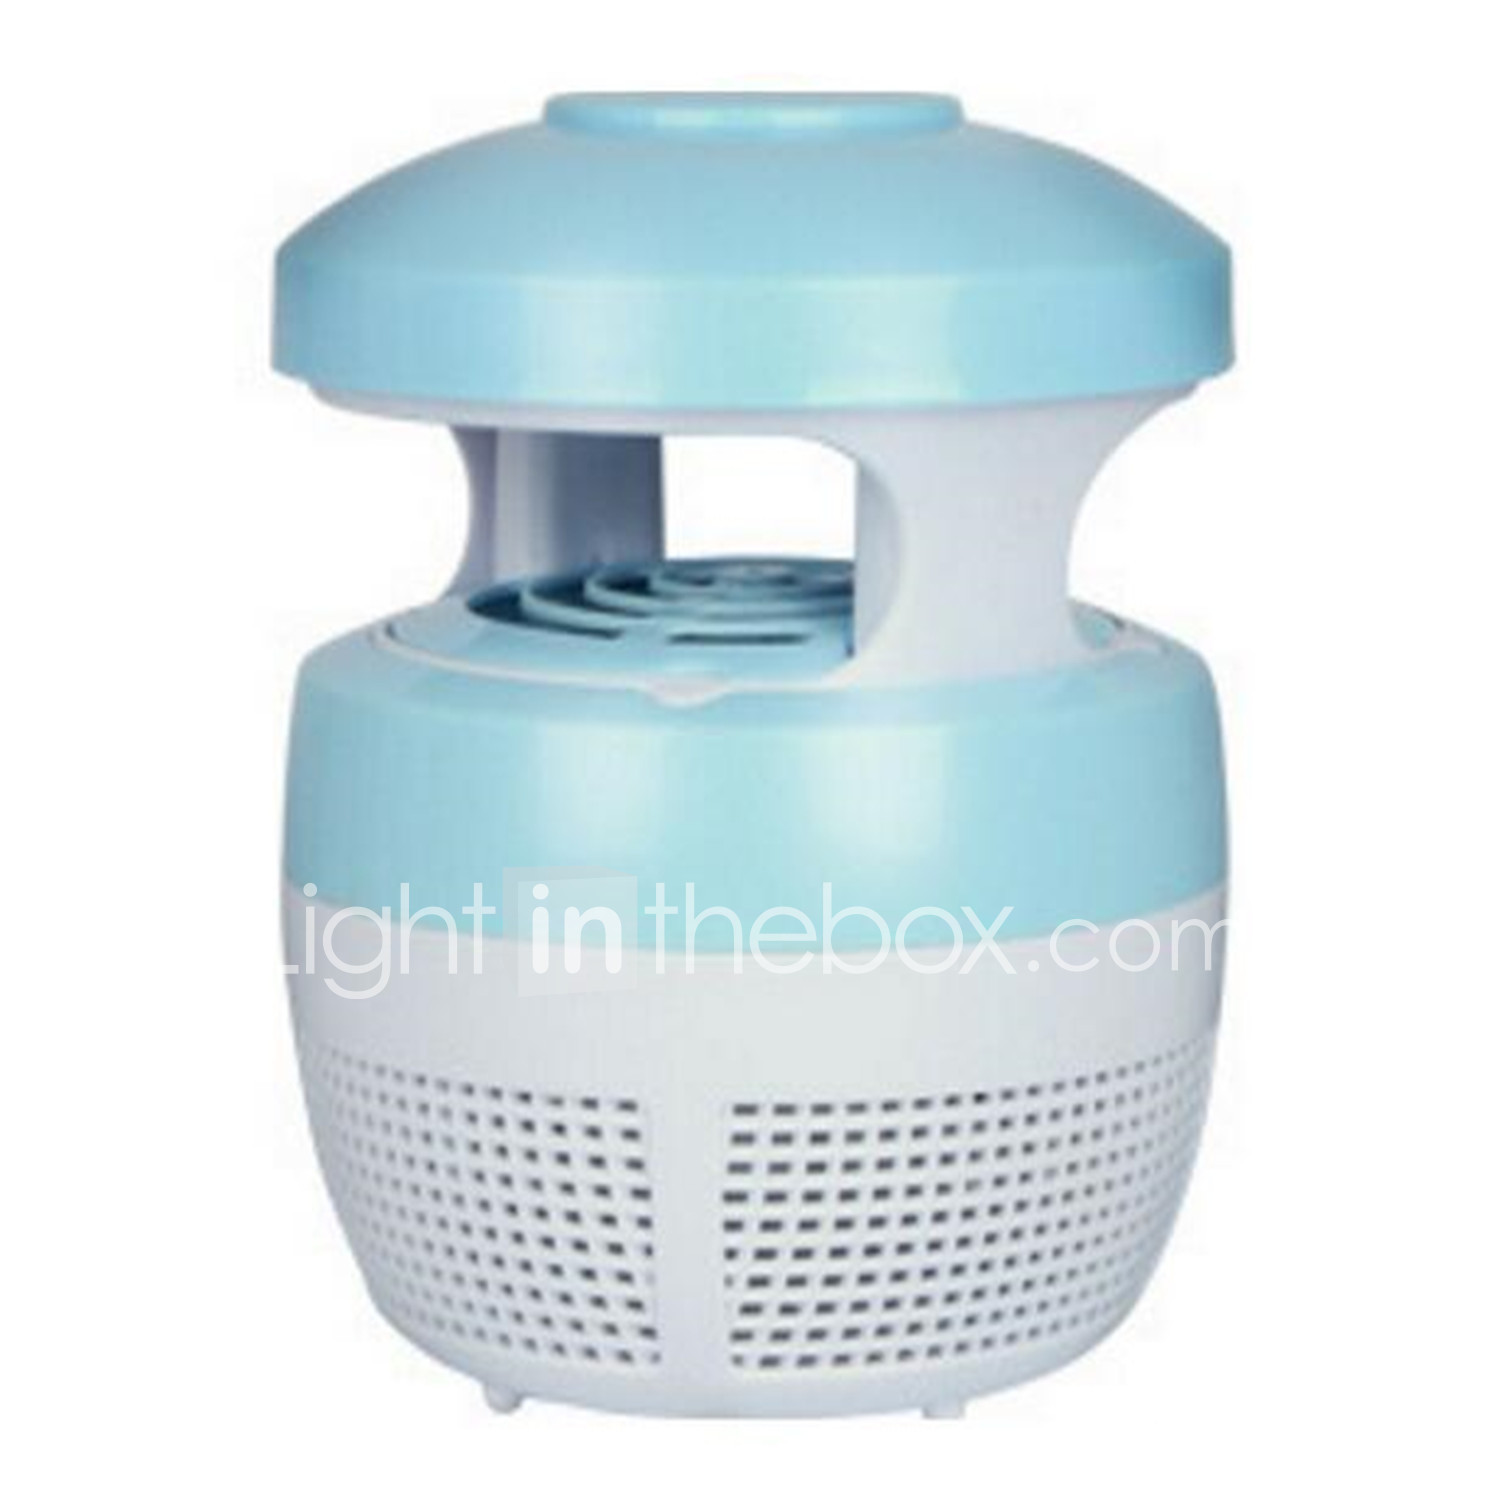 Electronic Mosquito Lamp Dispeller Killer Out The Swatter Electronics Hobby Photo By Supplier